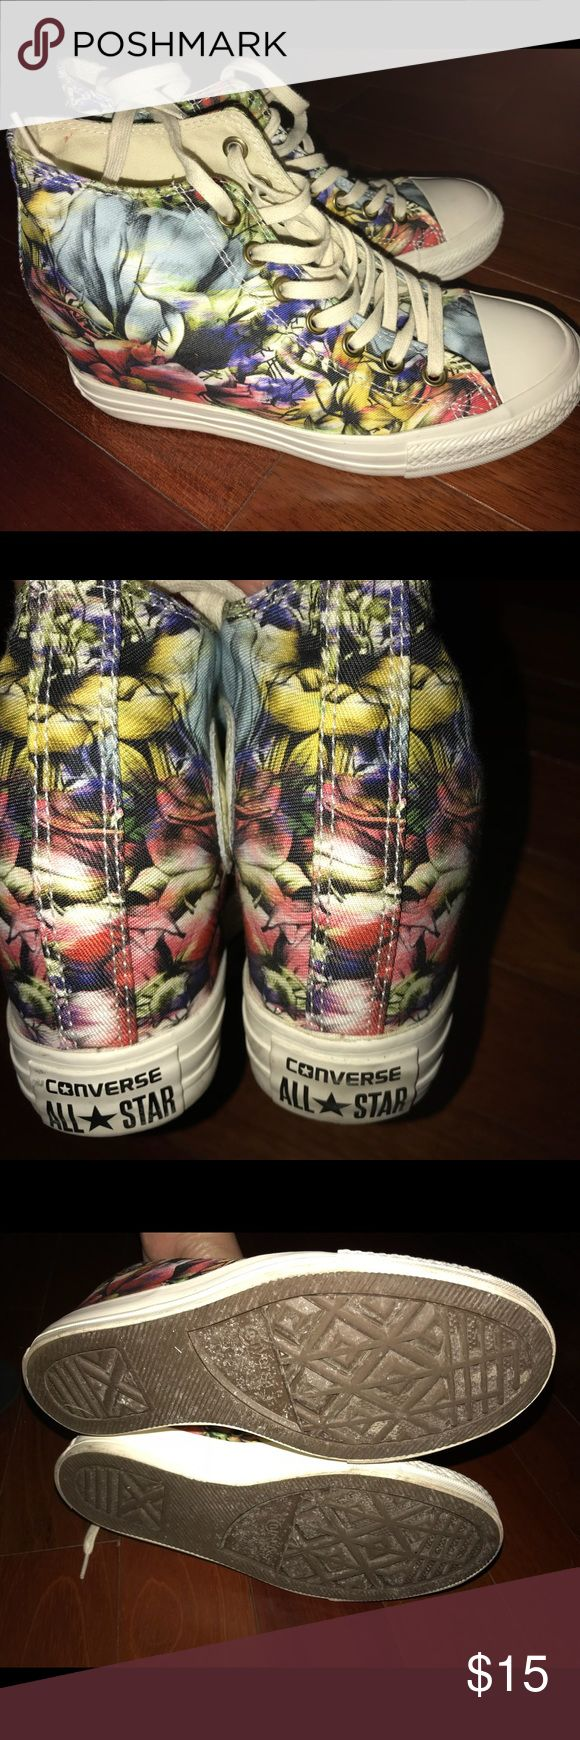 Converse wedge sneaker These are a fabulous pair of flower converse wedge sneakers Converse Shoes Sneakers